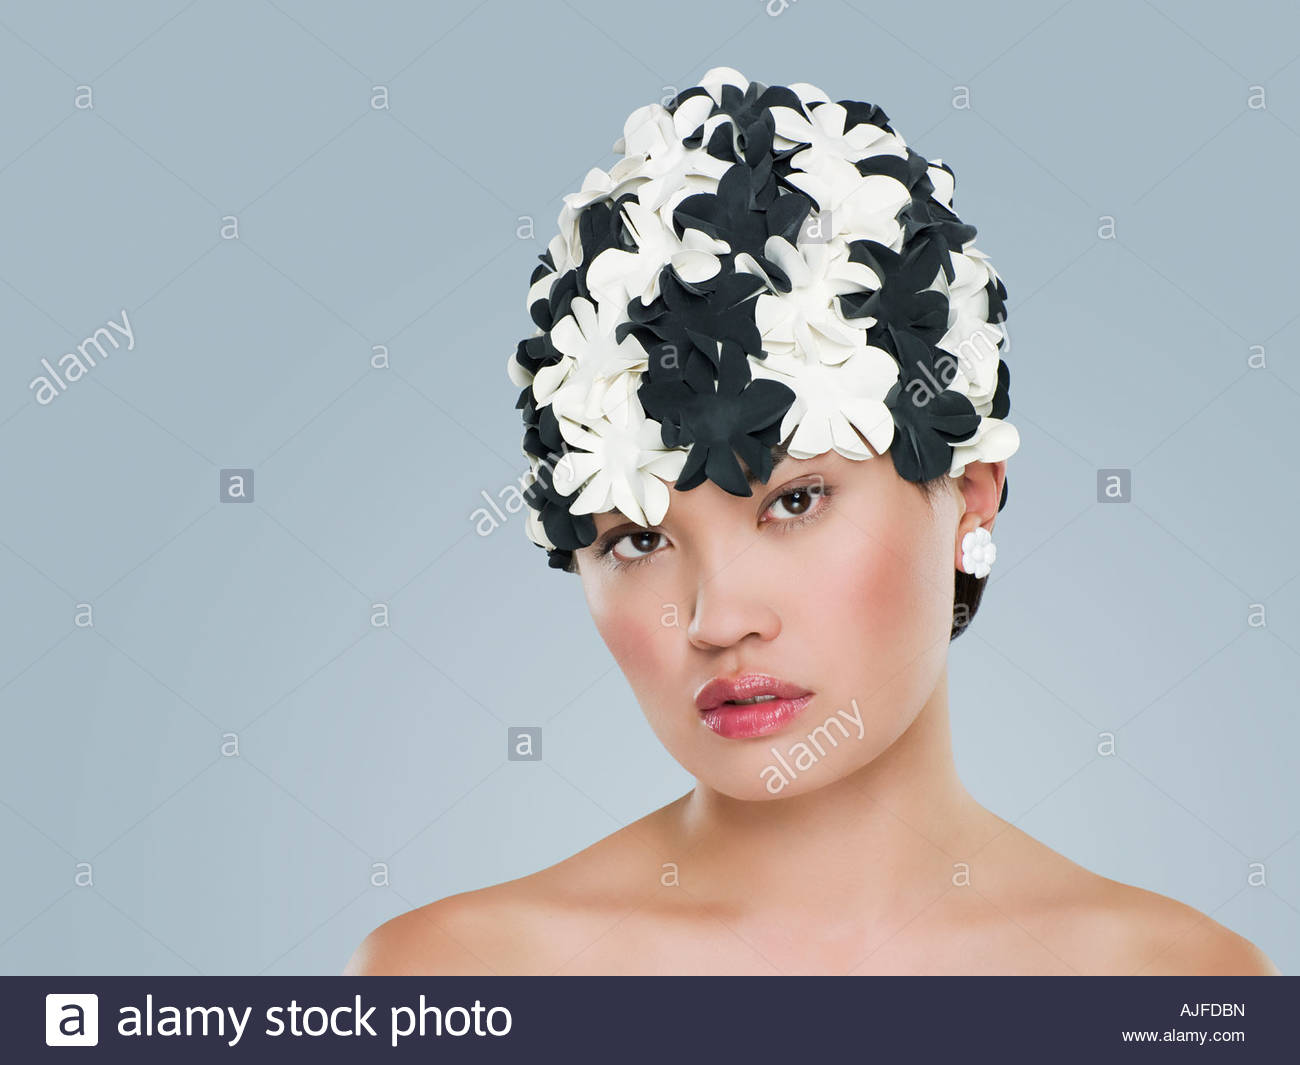 Woman wearing a floral hat - Stock Image